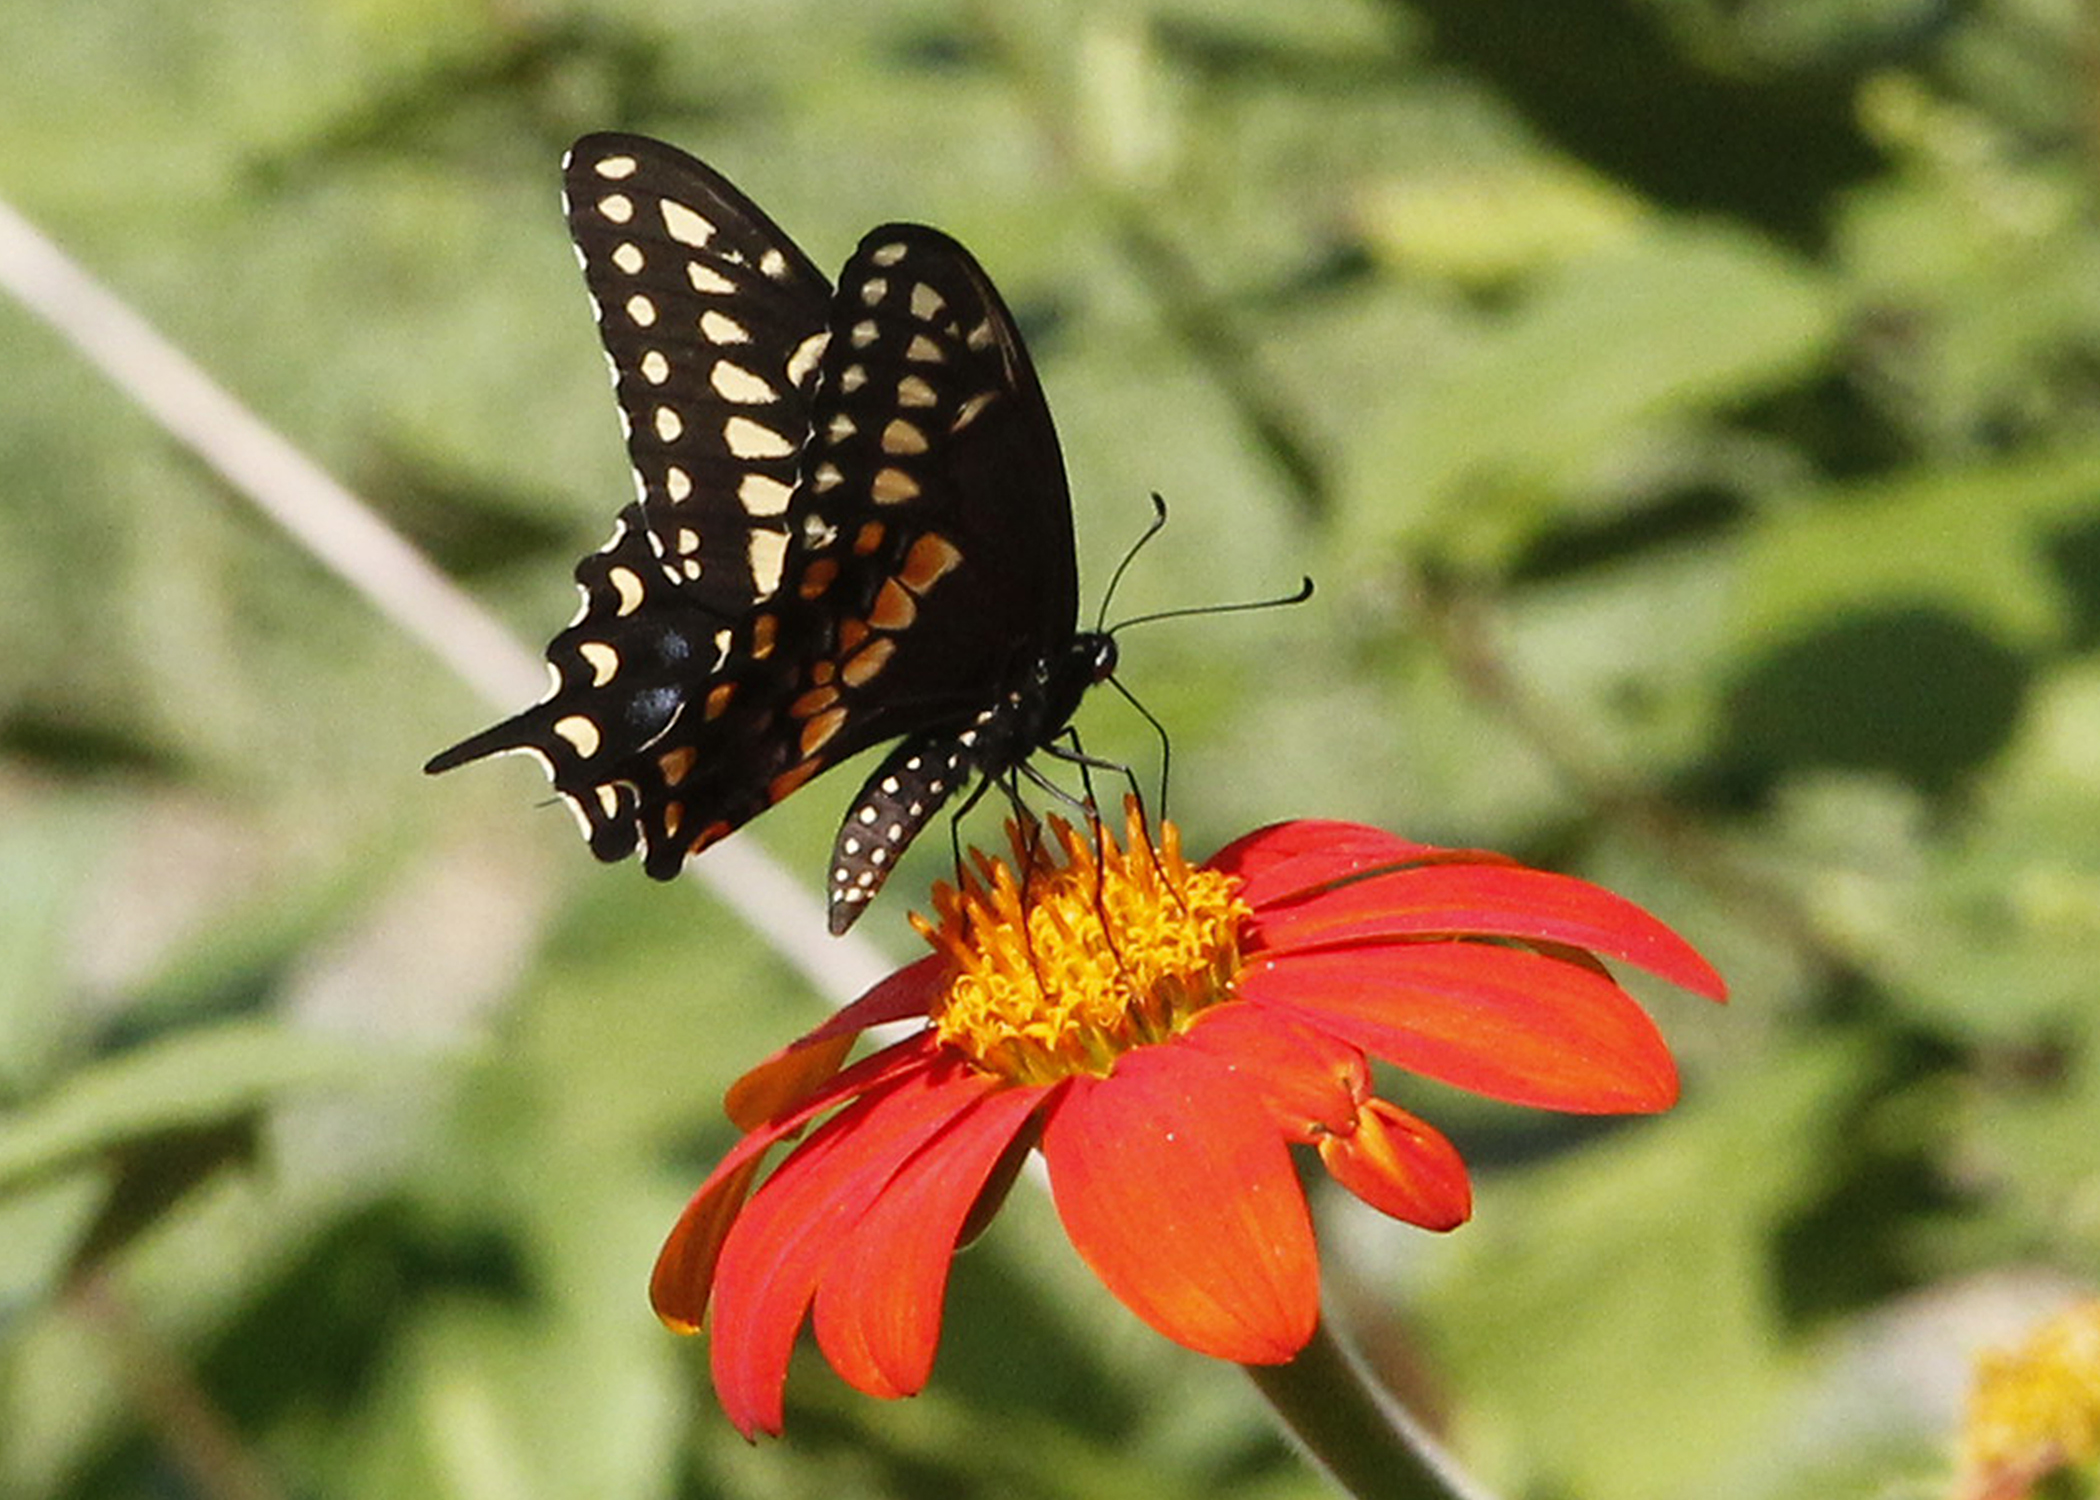 Spicebush swallowtail butterfly on a Mexican torch sunflower. Photo by Renee Garner.